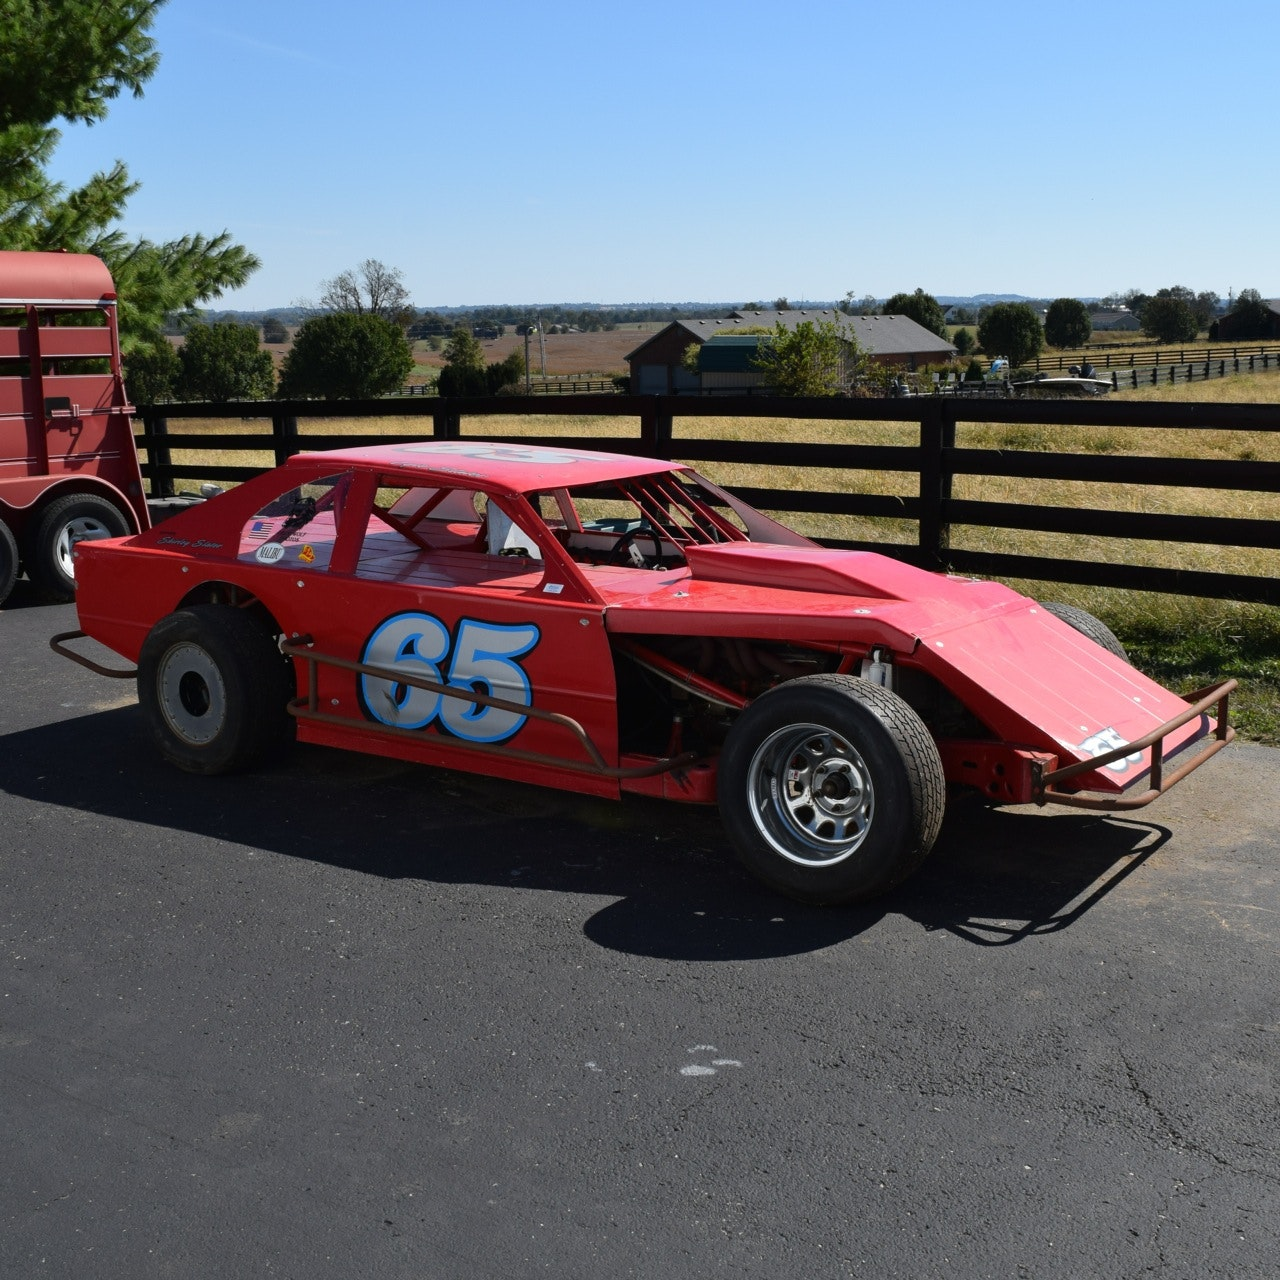 IMCA Racing Modified Race Car